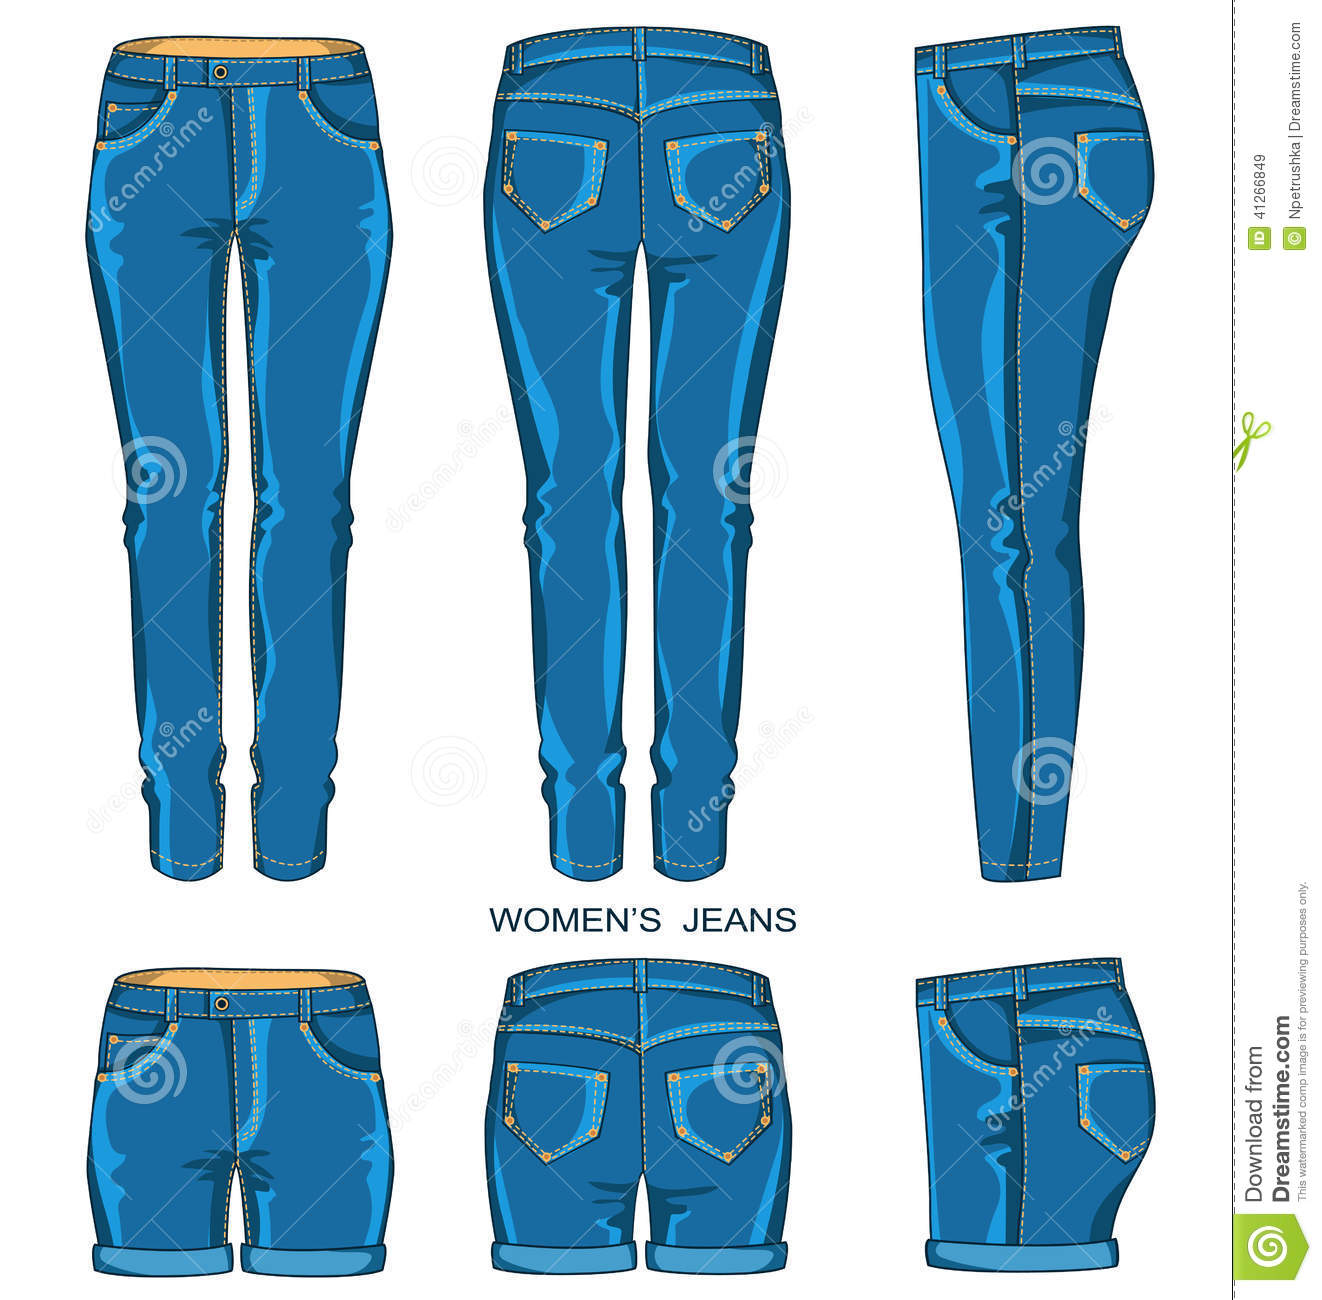 Free Download Women jeans shorts isolated Vector